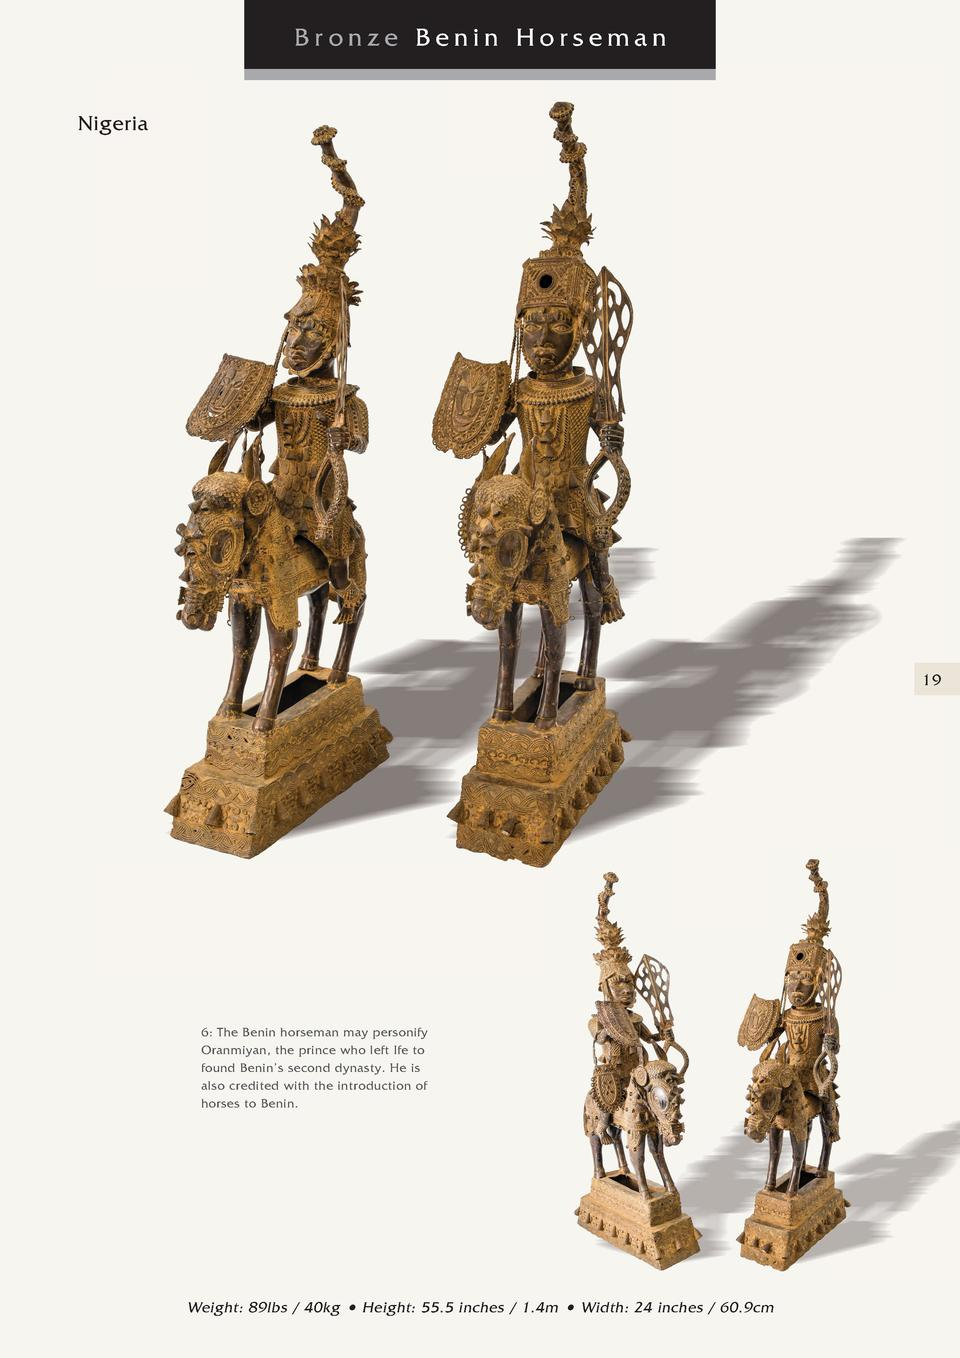 Bronze Benin Horseman Nigeria  19  6  The Benin horseman may personify Oranmiyan, the prince who left Ife to found Benin  ...